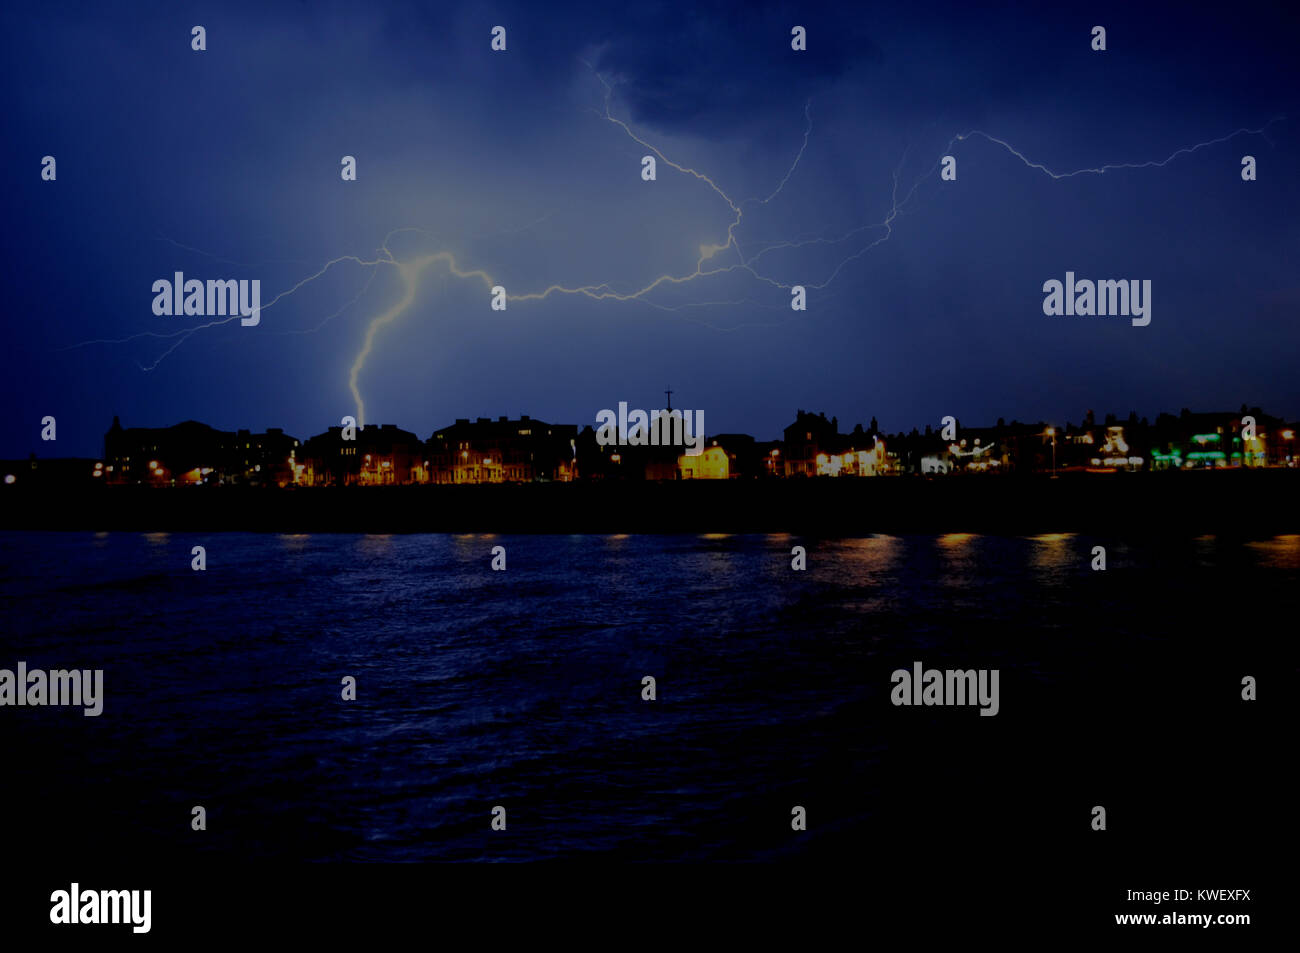 Thunder storm over the town of Deal on 18th July 2014, taken from Deal Pier at night... Stock Photo